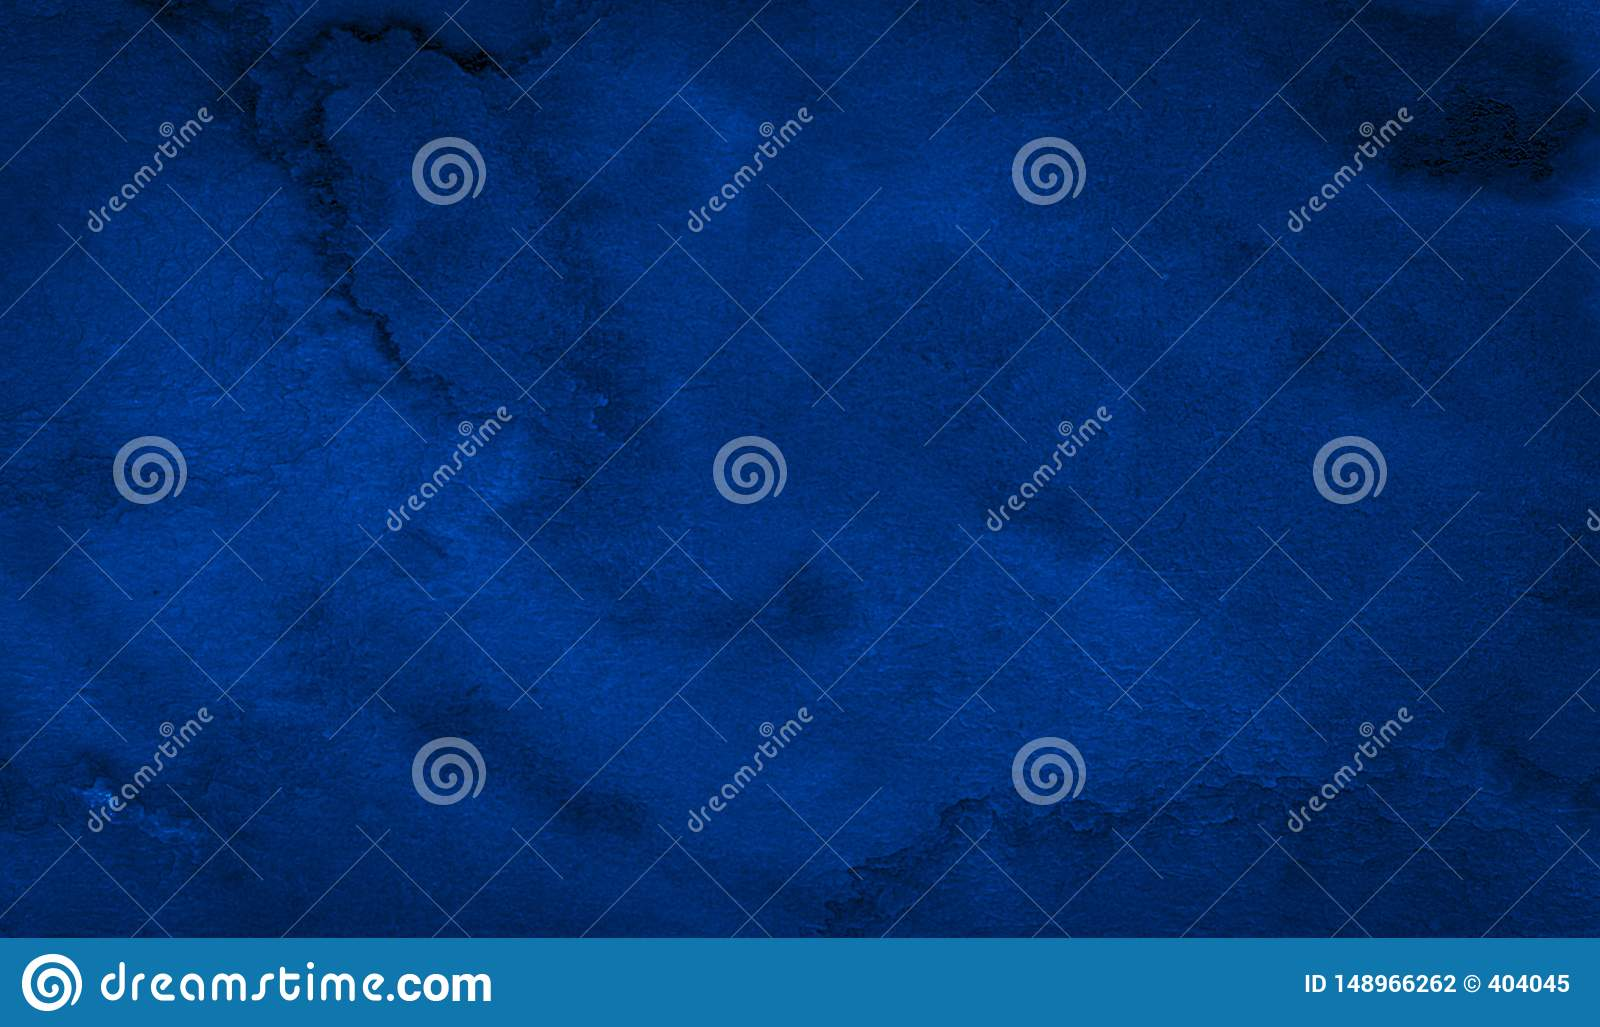 Dark rich blue watercolor background with torn strokes and uneven divorces. Abstract background for design